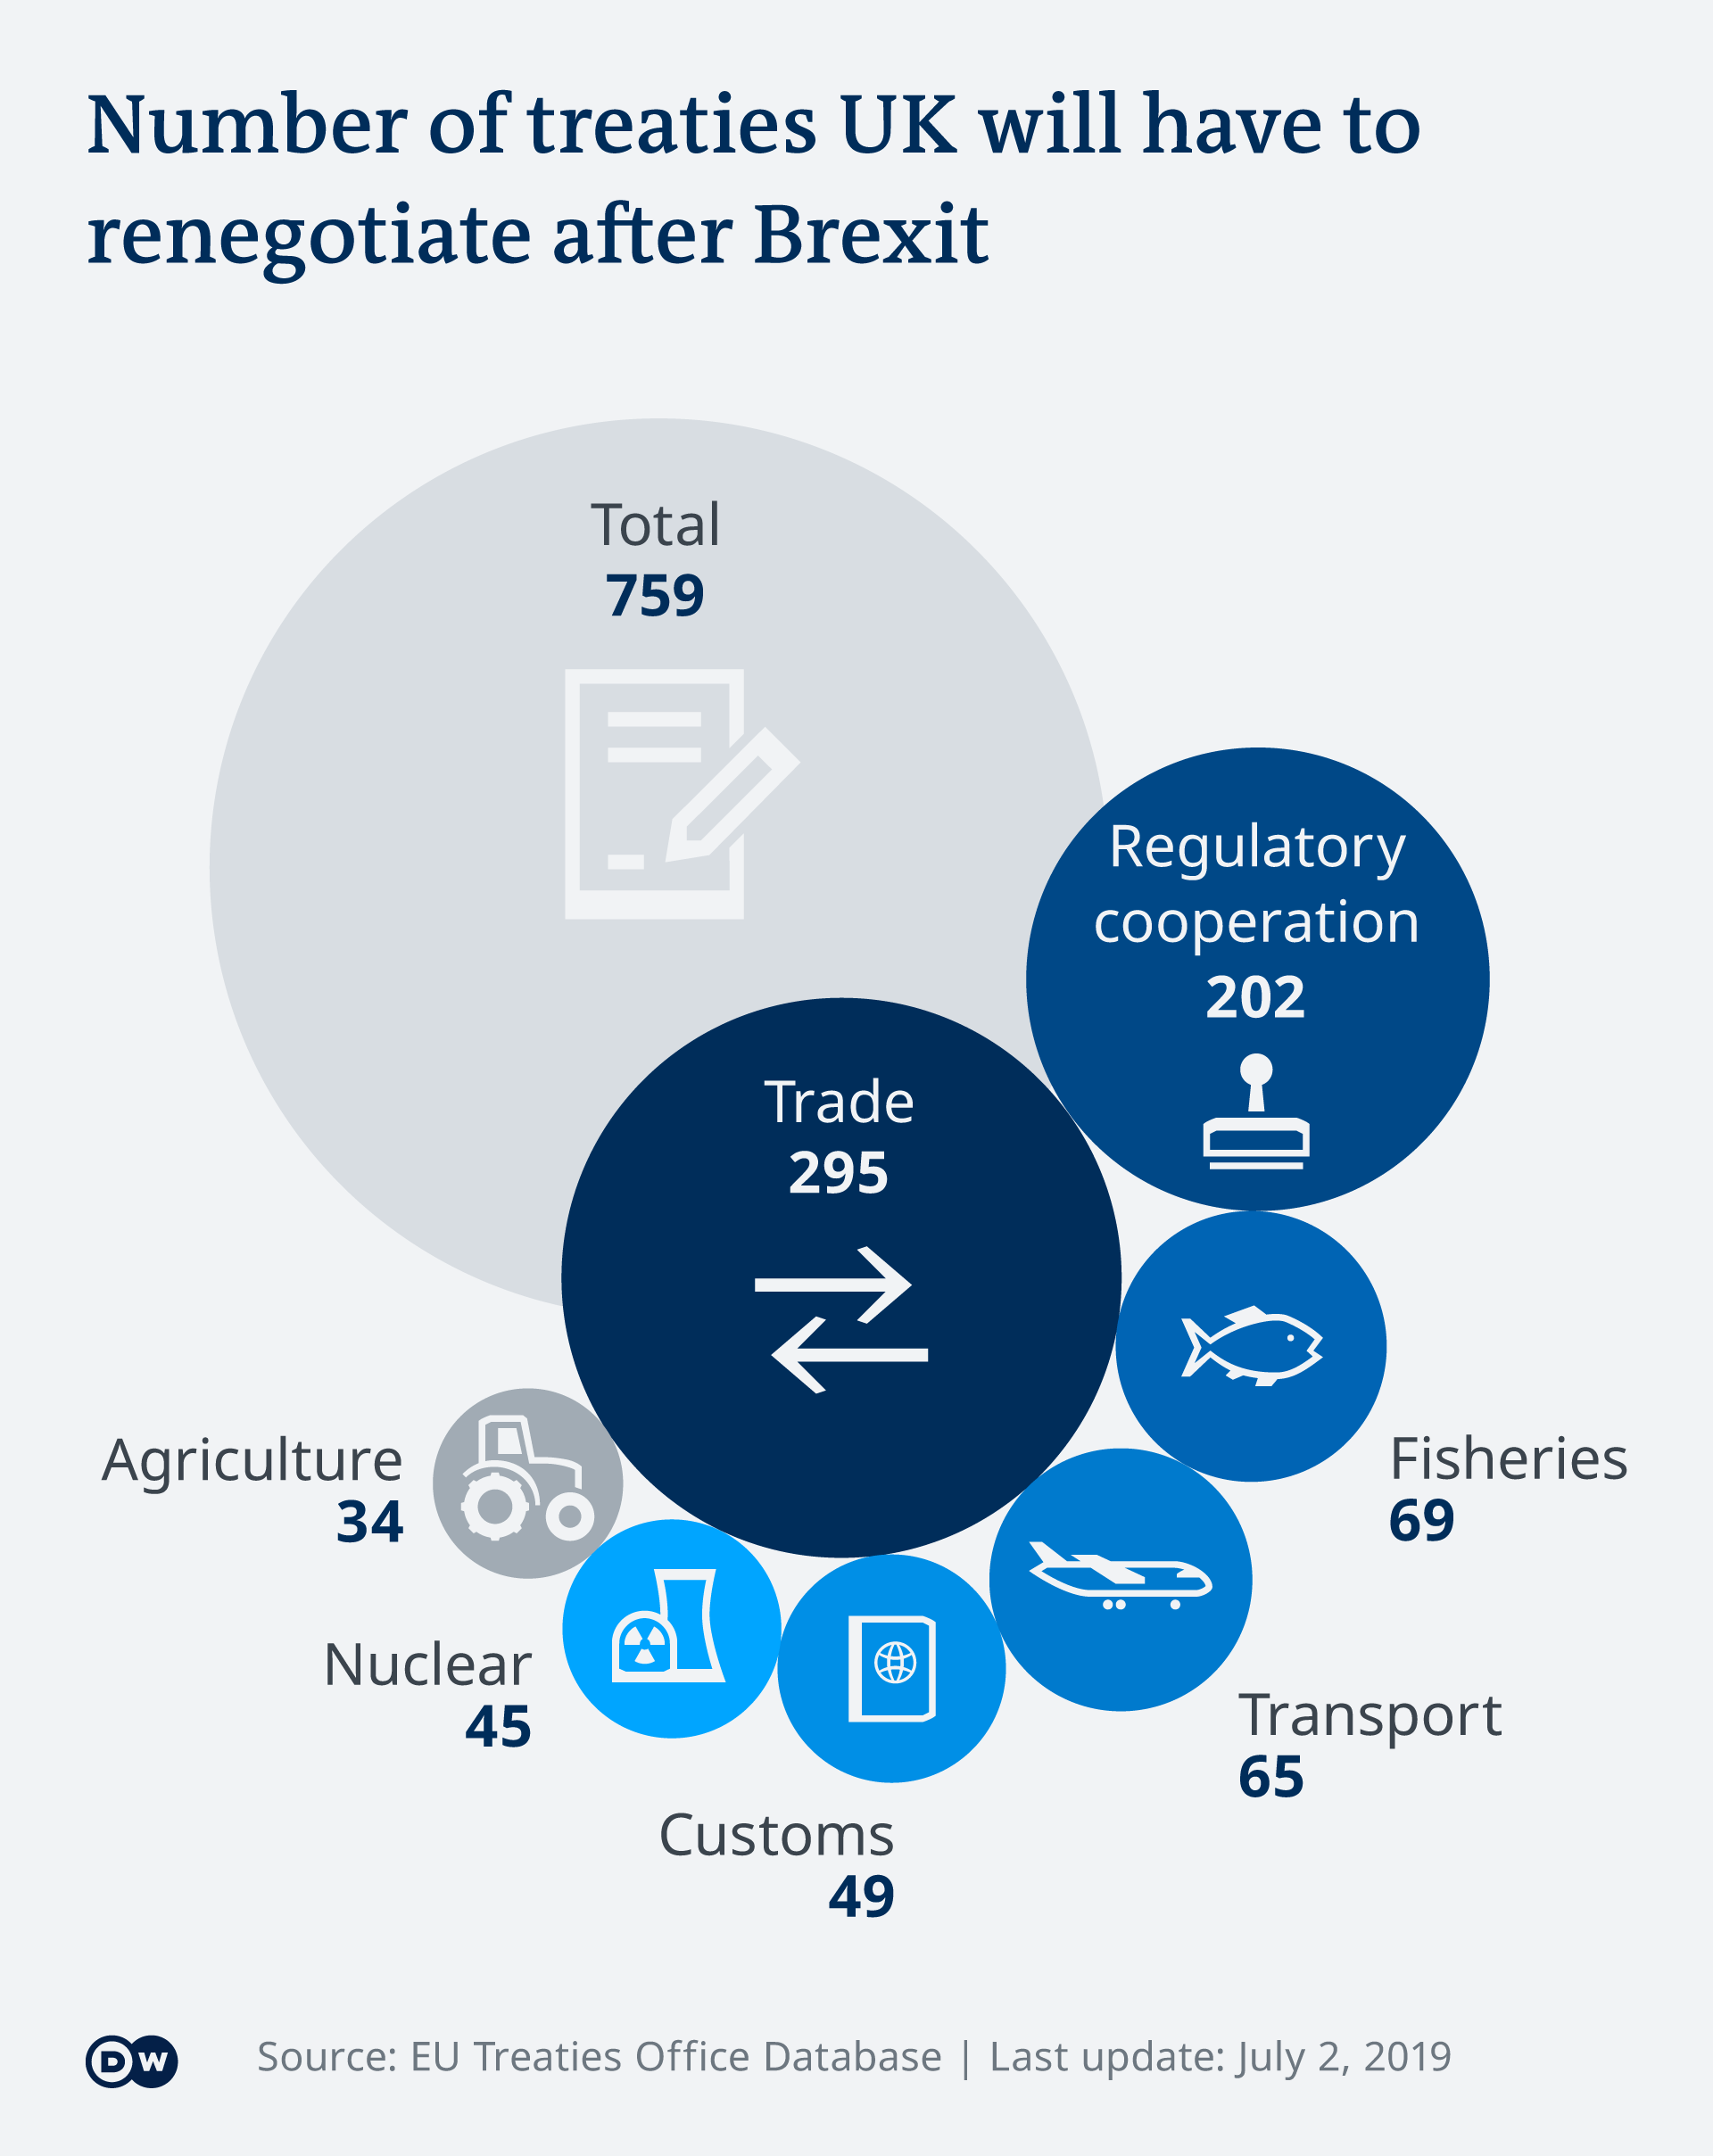 An infographic shows the number of treaties the UK will have to renegotiate after Brexit